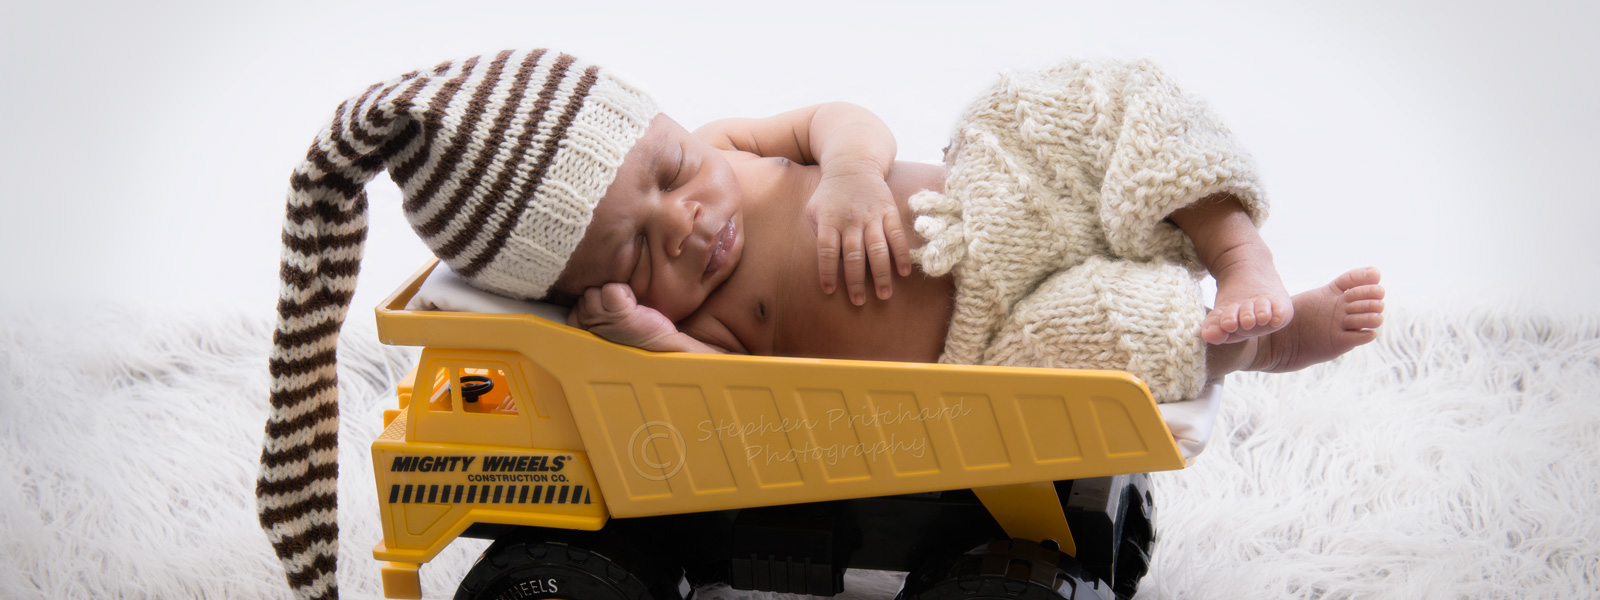 20150725_ND40122_newborn-in-dumper-truck_w1600